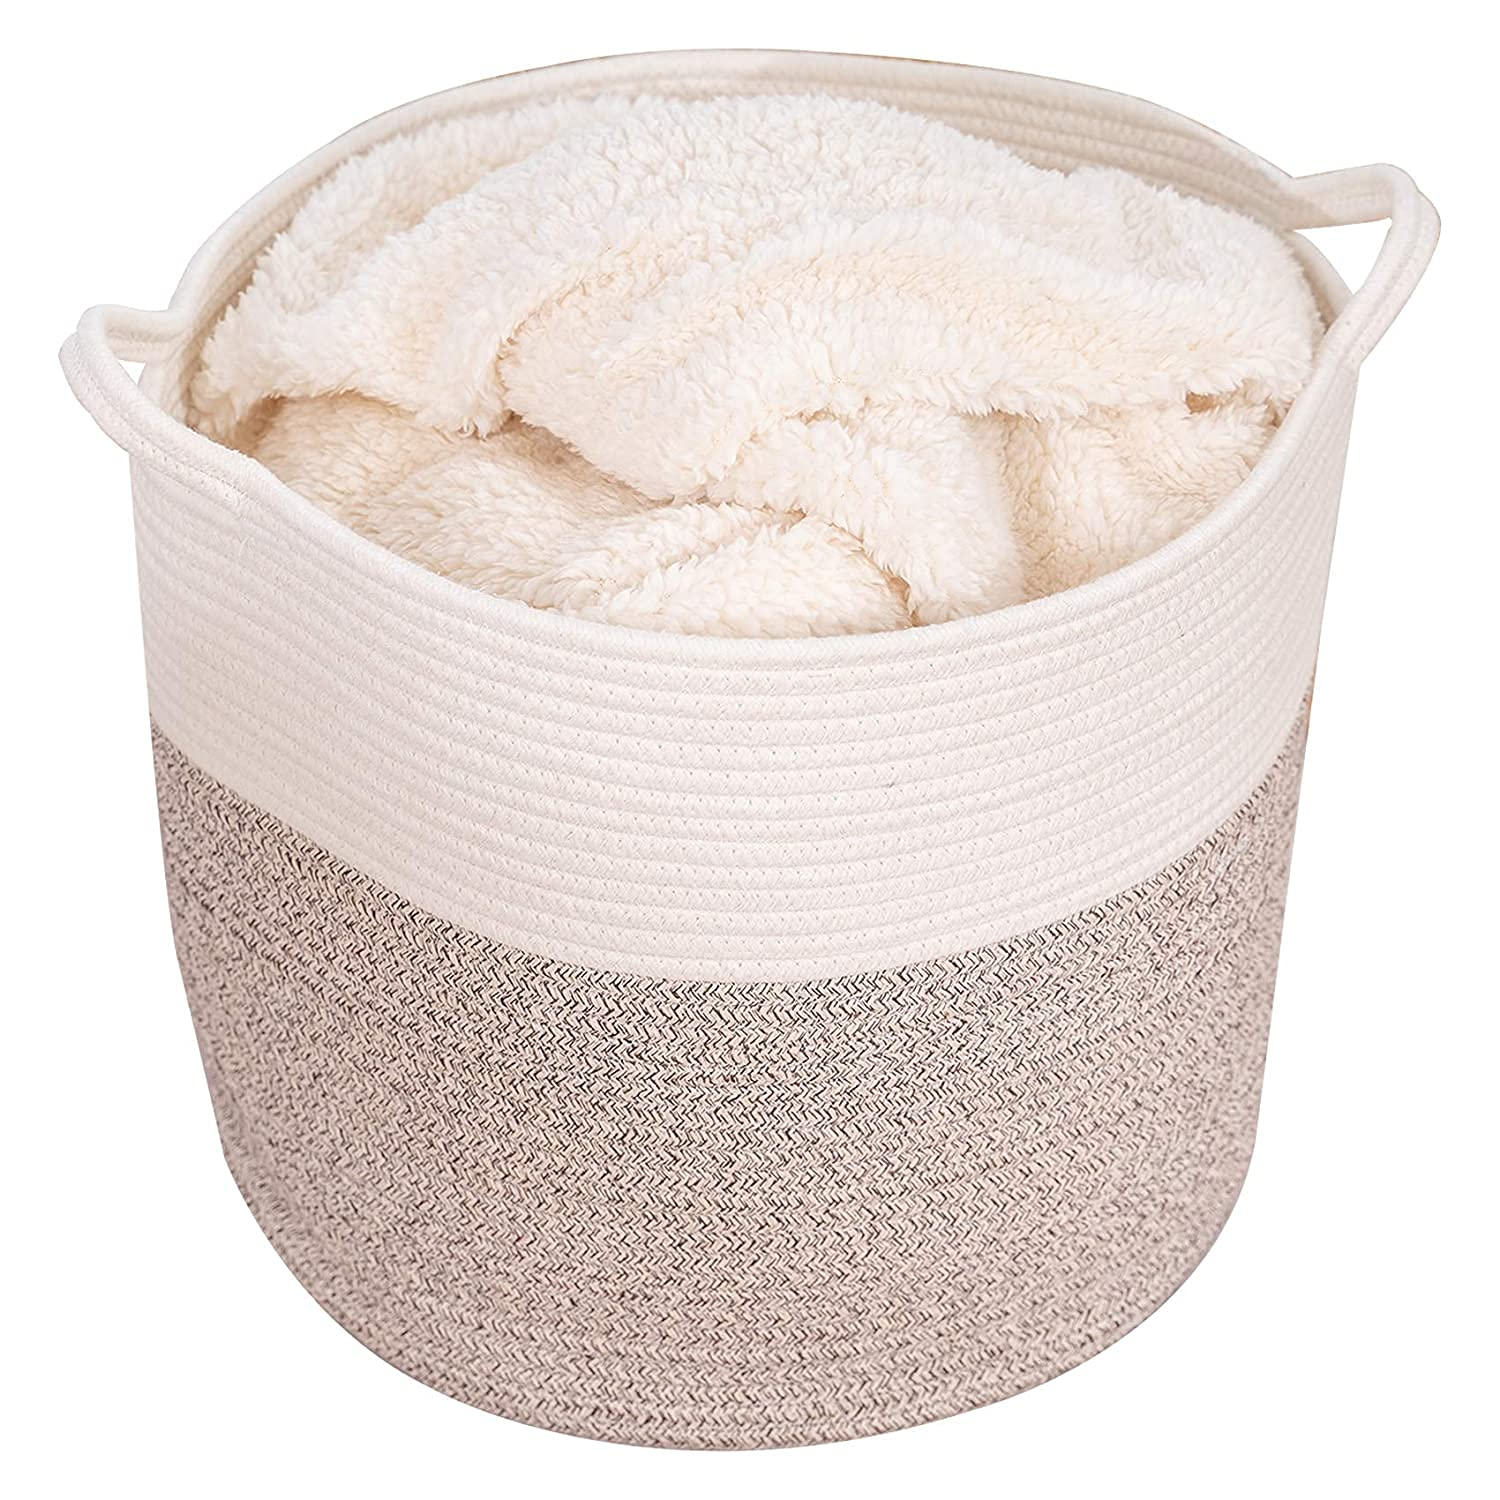 VK Living Cotton Rope Plant Basket with Handles 10